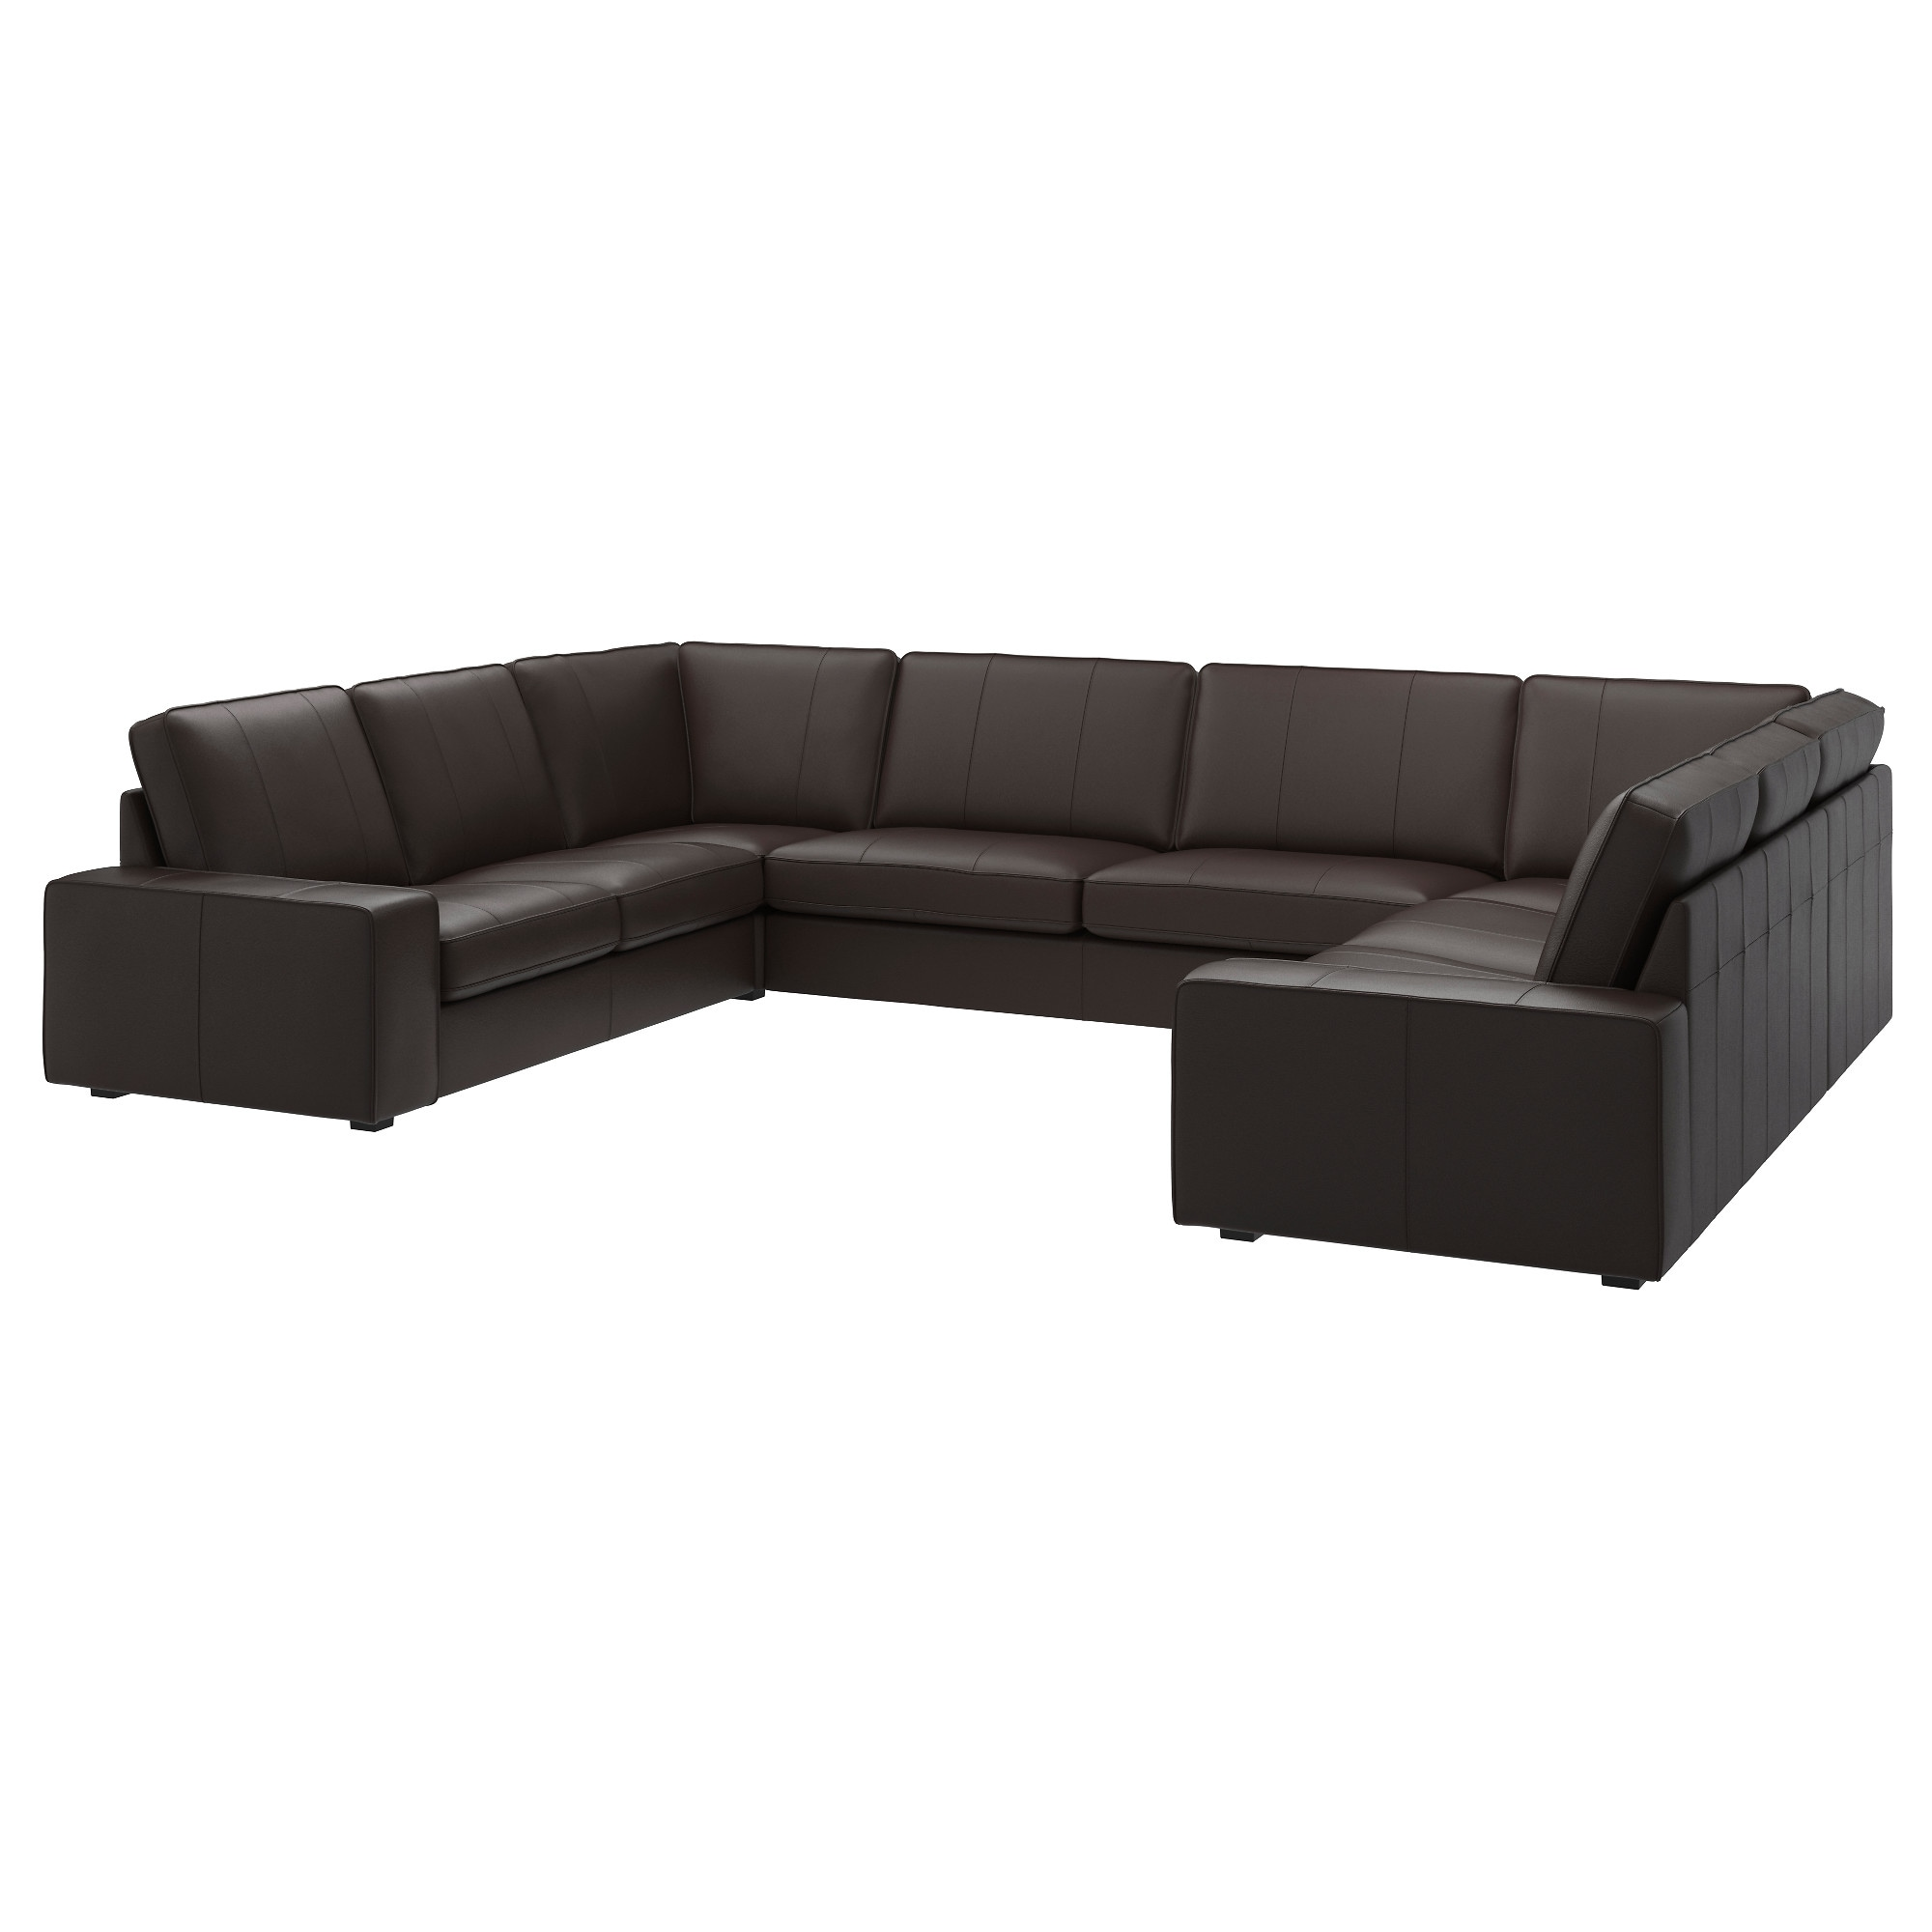 Modular sofa sectional best 25 modular couch ideas on for Sofa en l liquidation